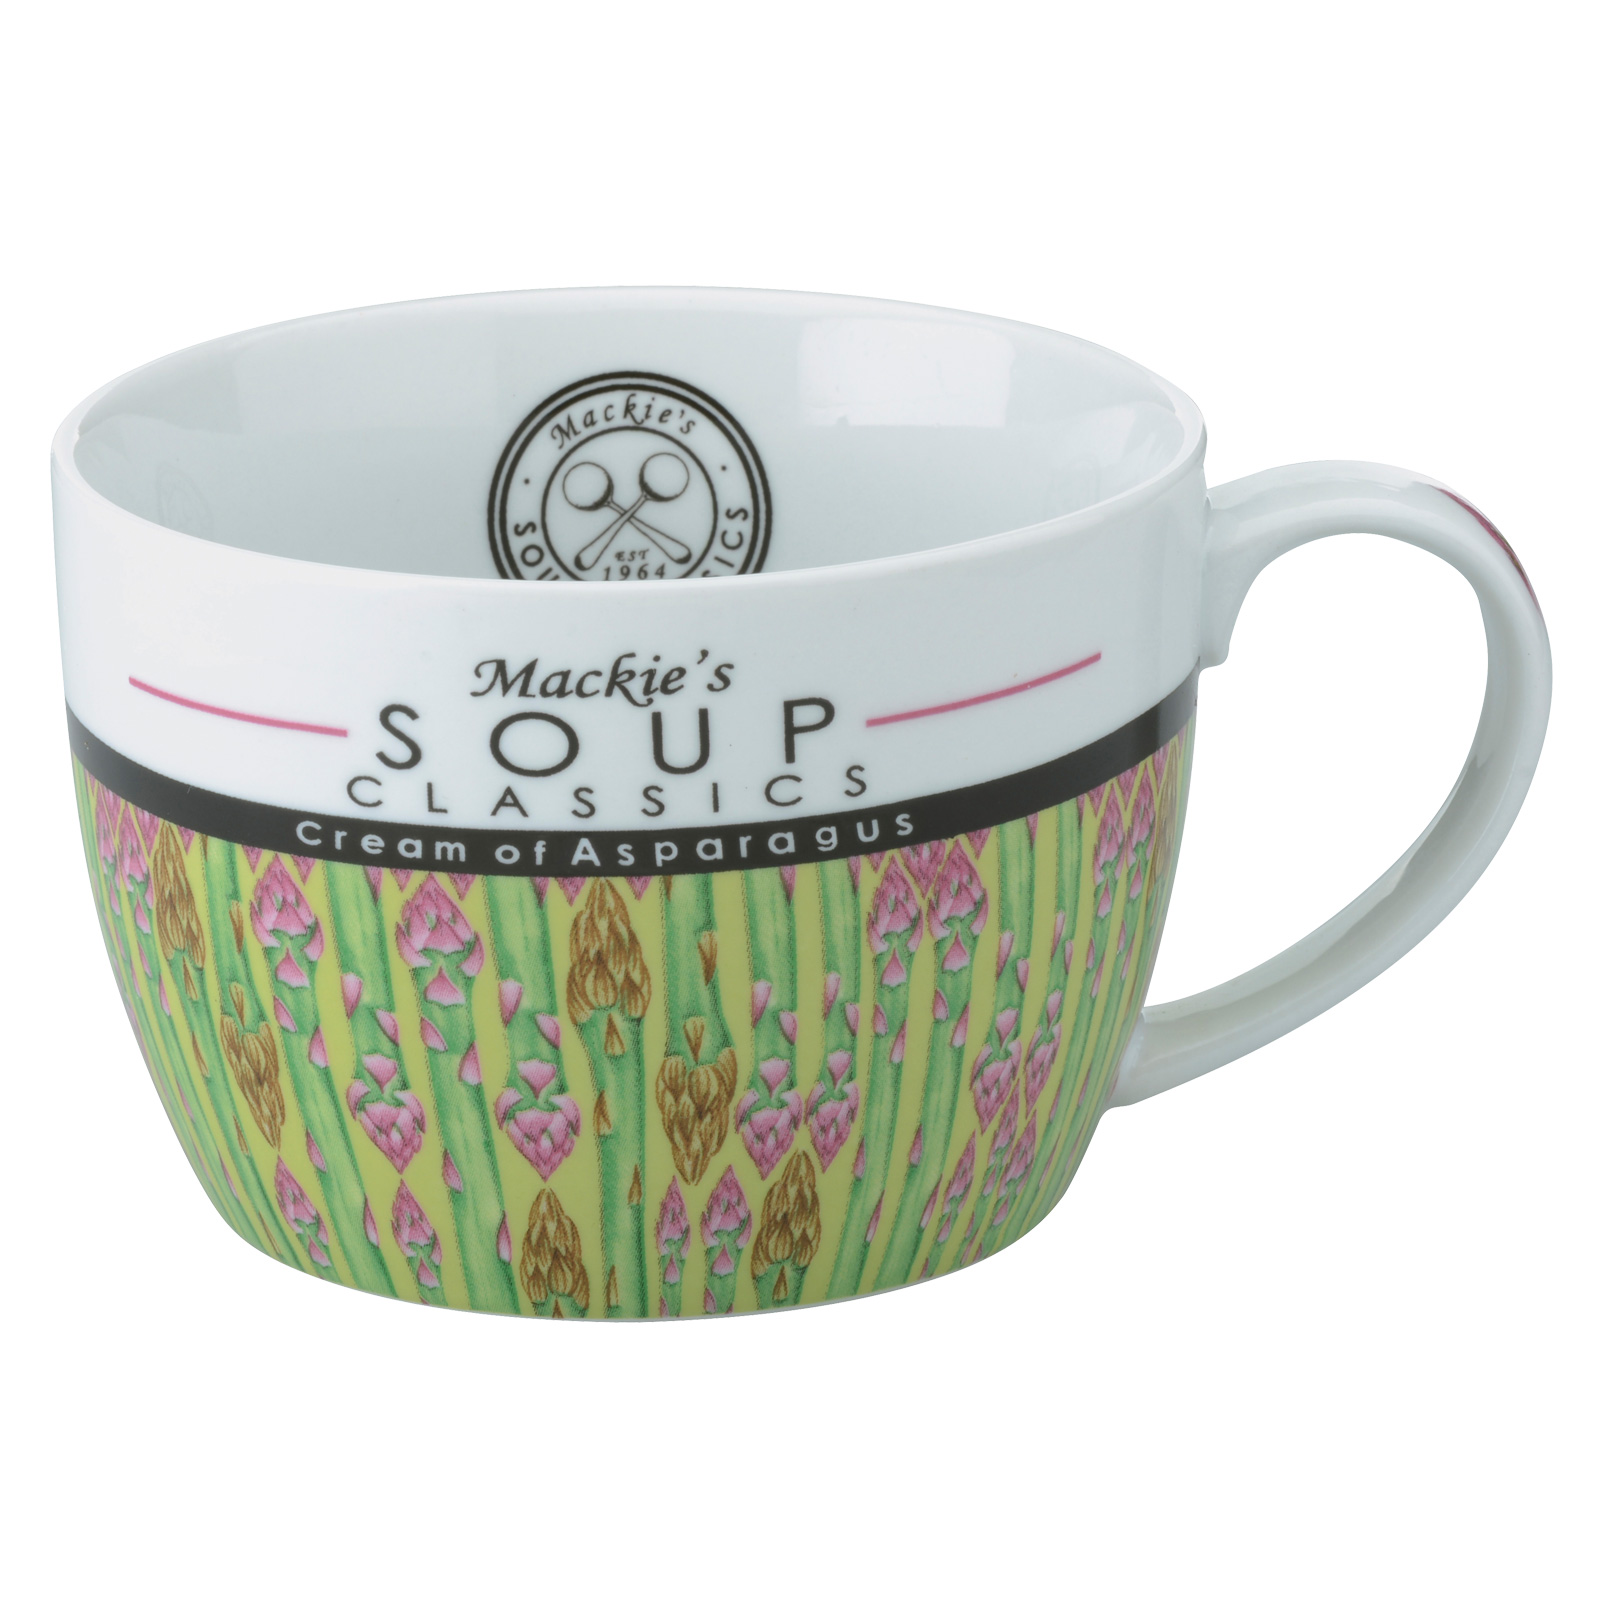 Mackie's Cream of Asparagus Soup Mug